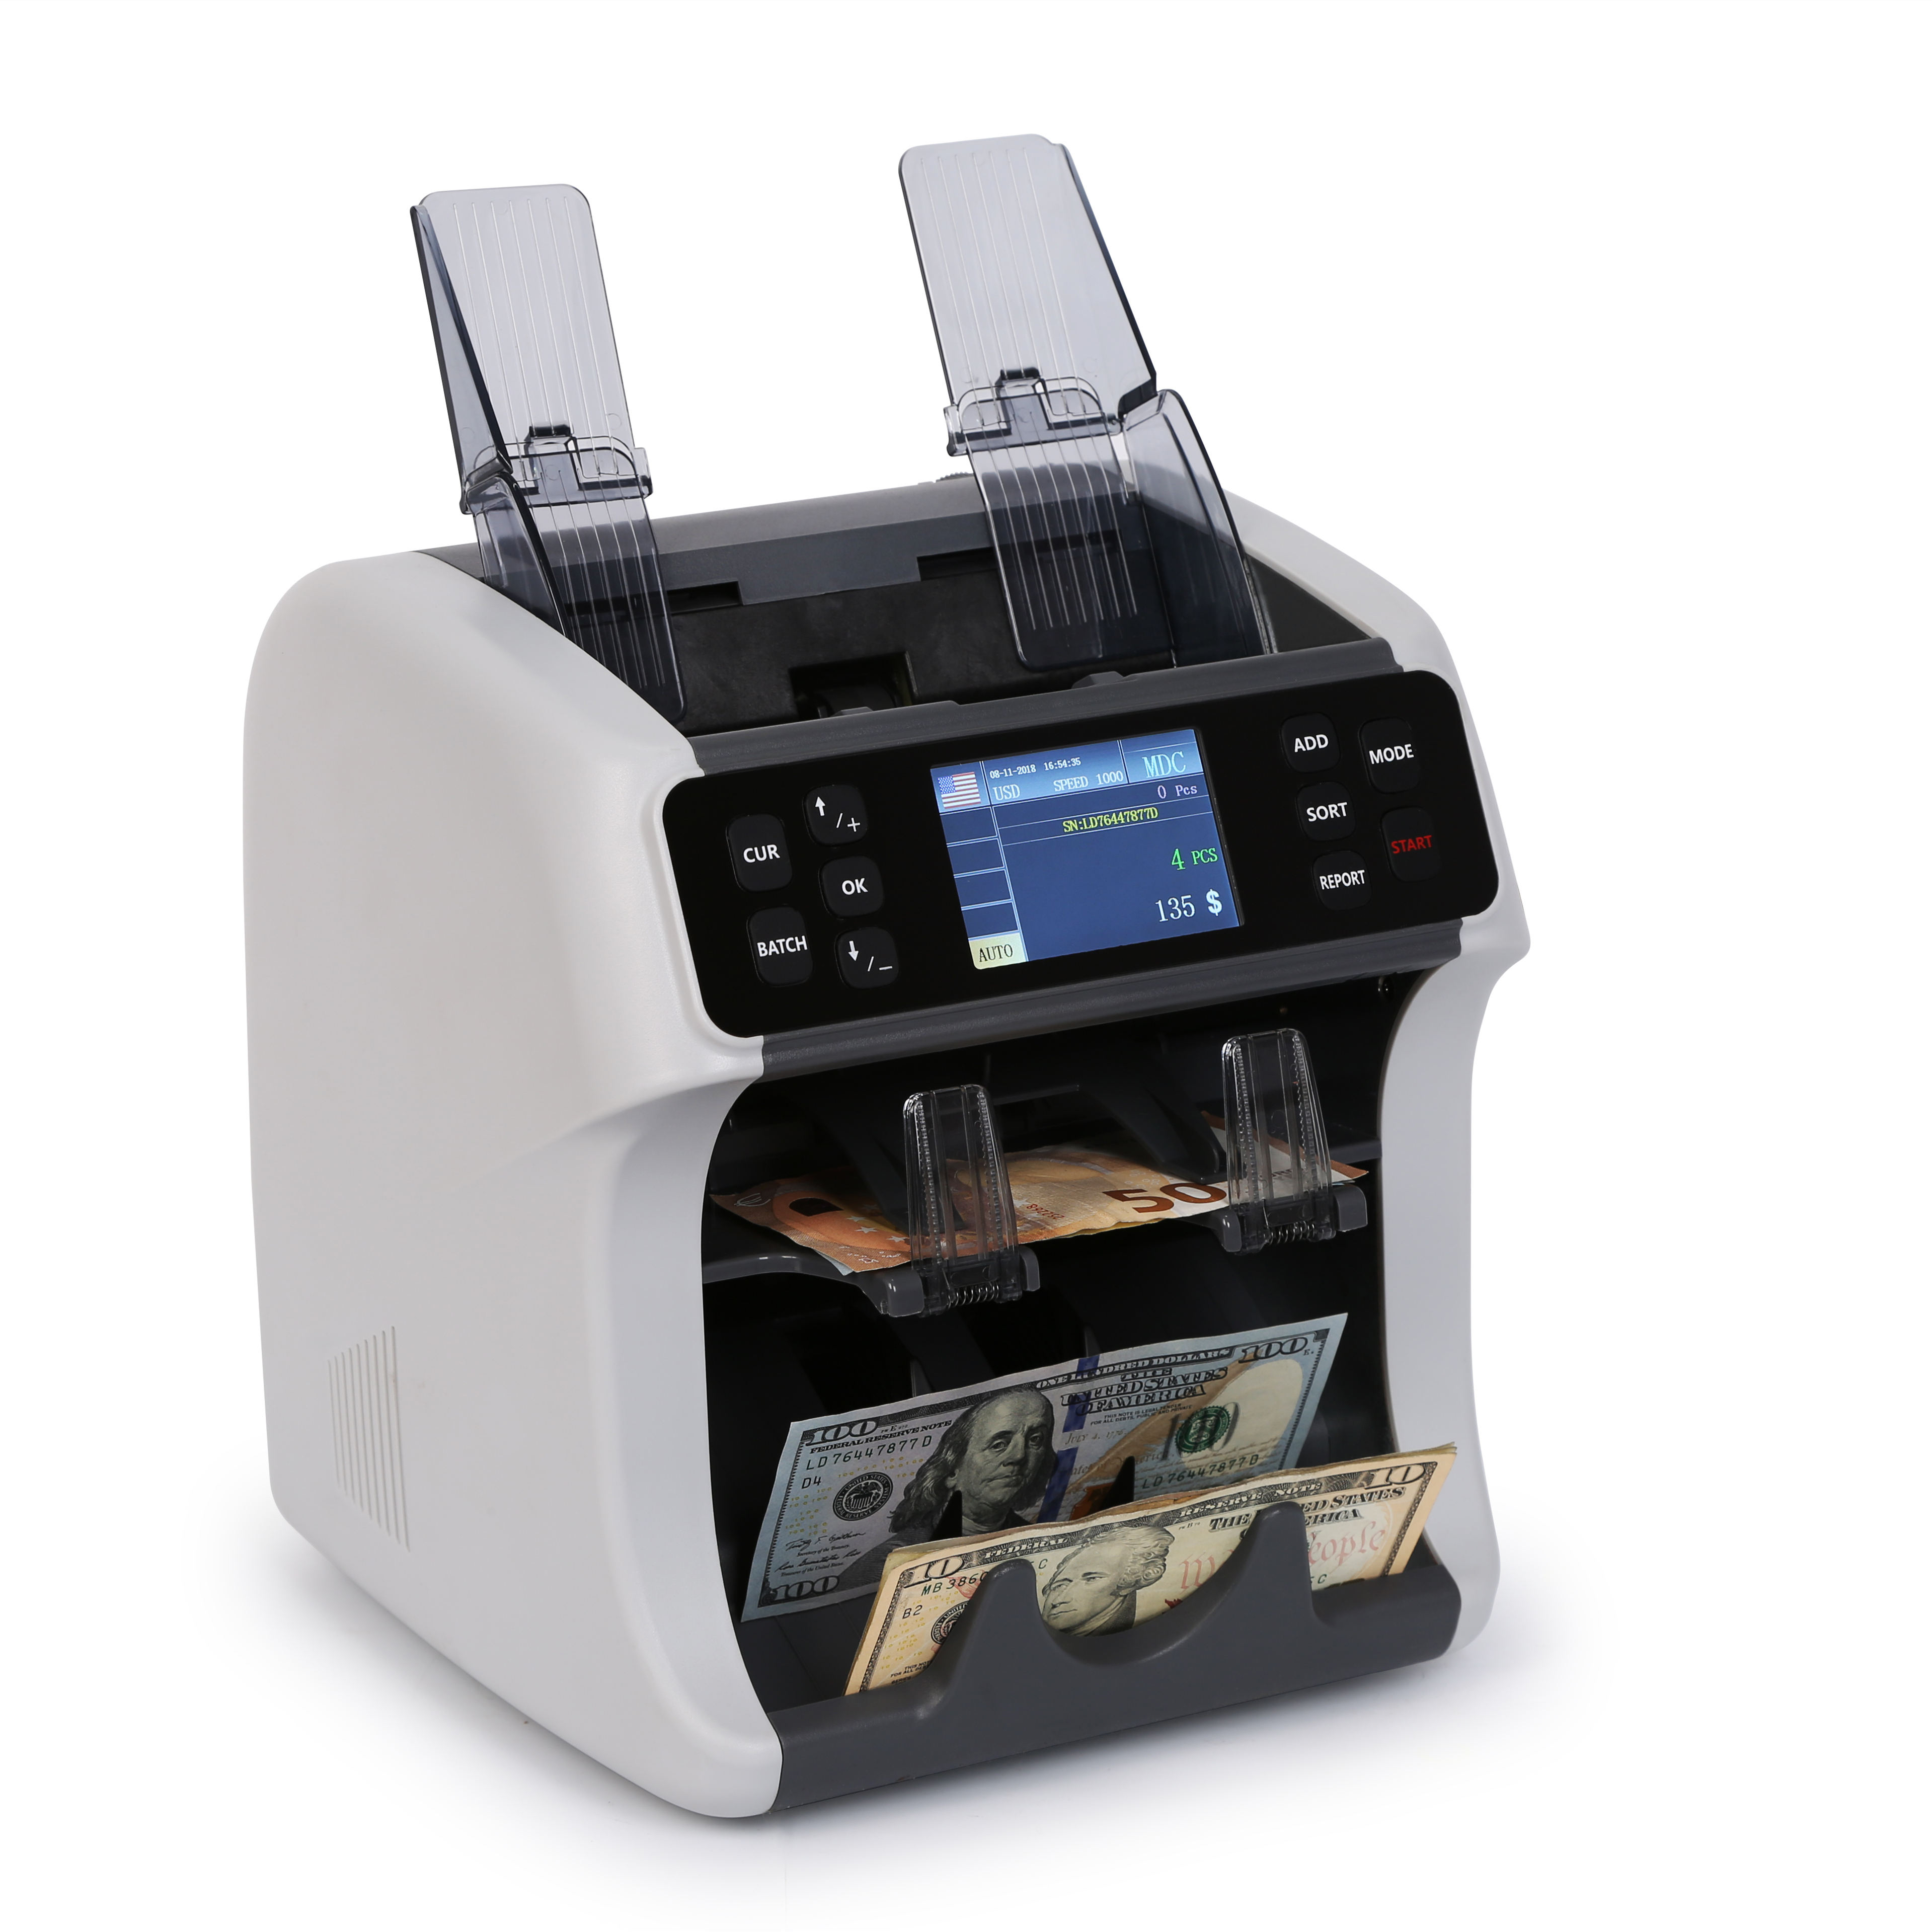 Banks [ Money Machine ] Money Machine Financial Equipment 2 Pocket Money Note Multi Currency Mix Value Counting Sorter Machine SH-08C